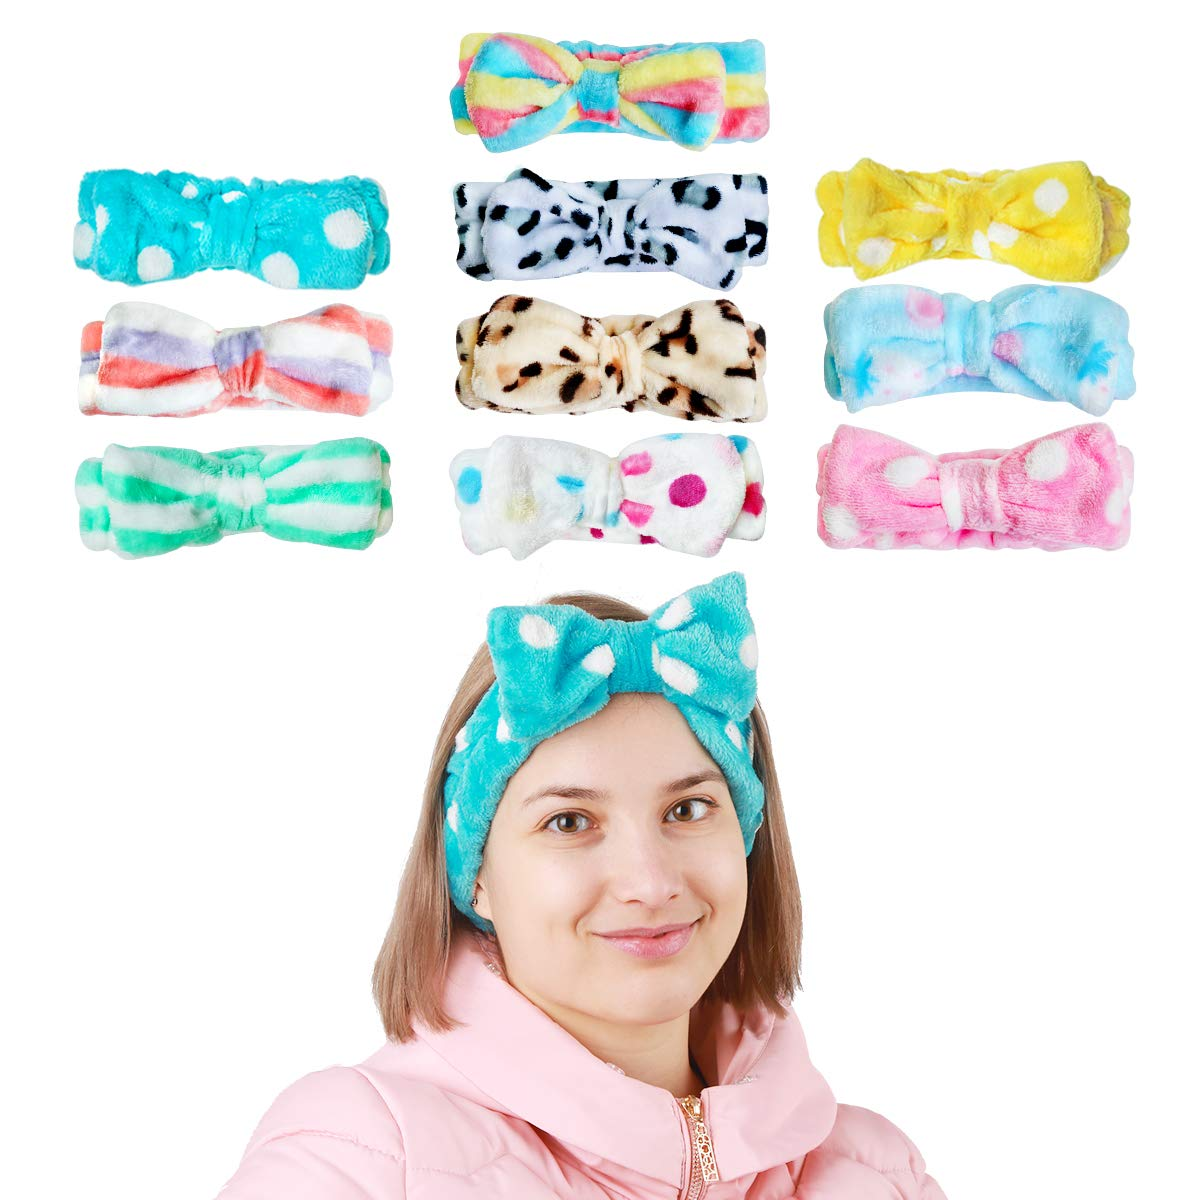 Facai Bow Hair Band,10 Pack Bowknot Cosmetic Makeup Headband Shower Spa Headband Party Running Sports Elastic Soft Fleece Cosmetic Hairbands Face Wash Headbands for Women Girls